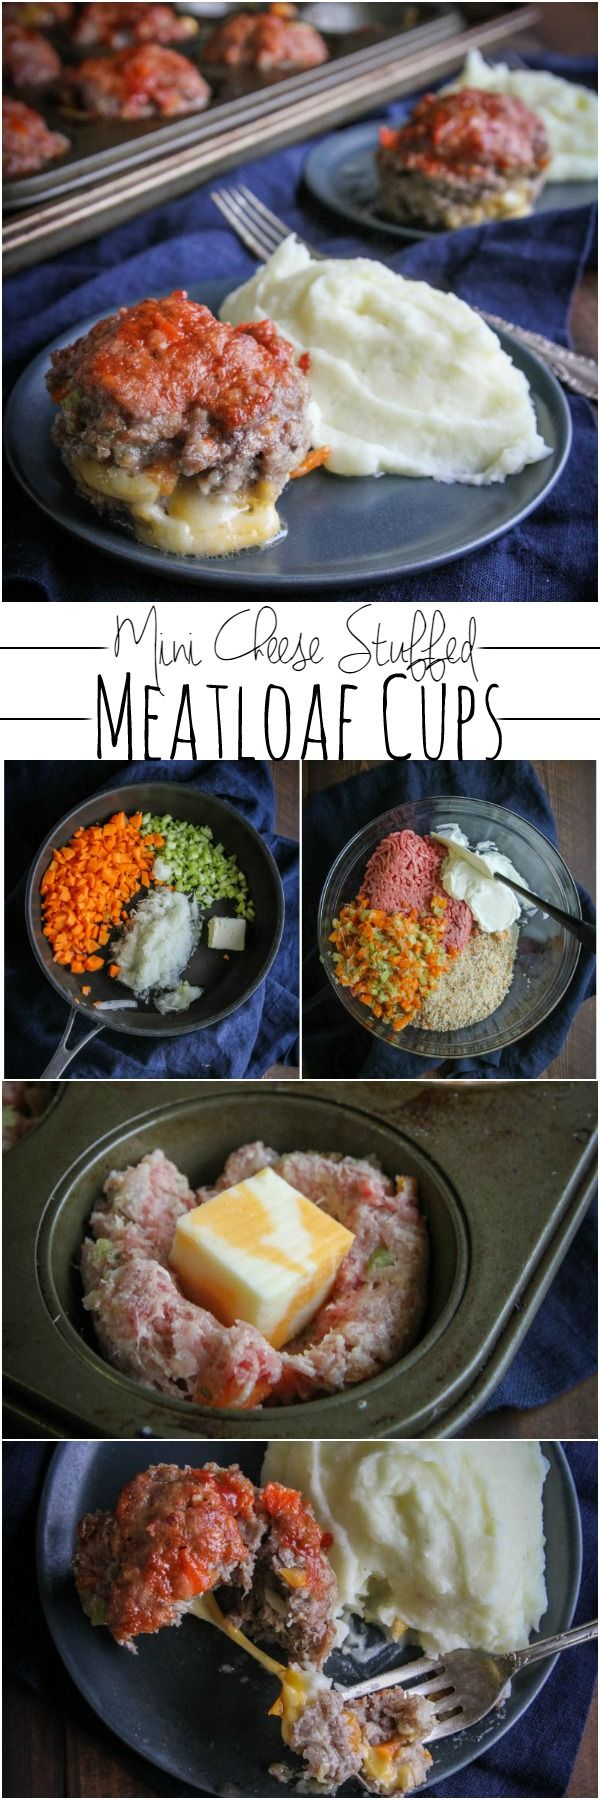 Mini cheese stuffed meatloaf cups from @sweetphi perfect for Sunday family dinner, ground beef recipe, egg free meatloaf, mini meatloaf cups, mini meatloaf recipe